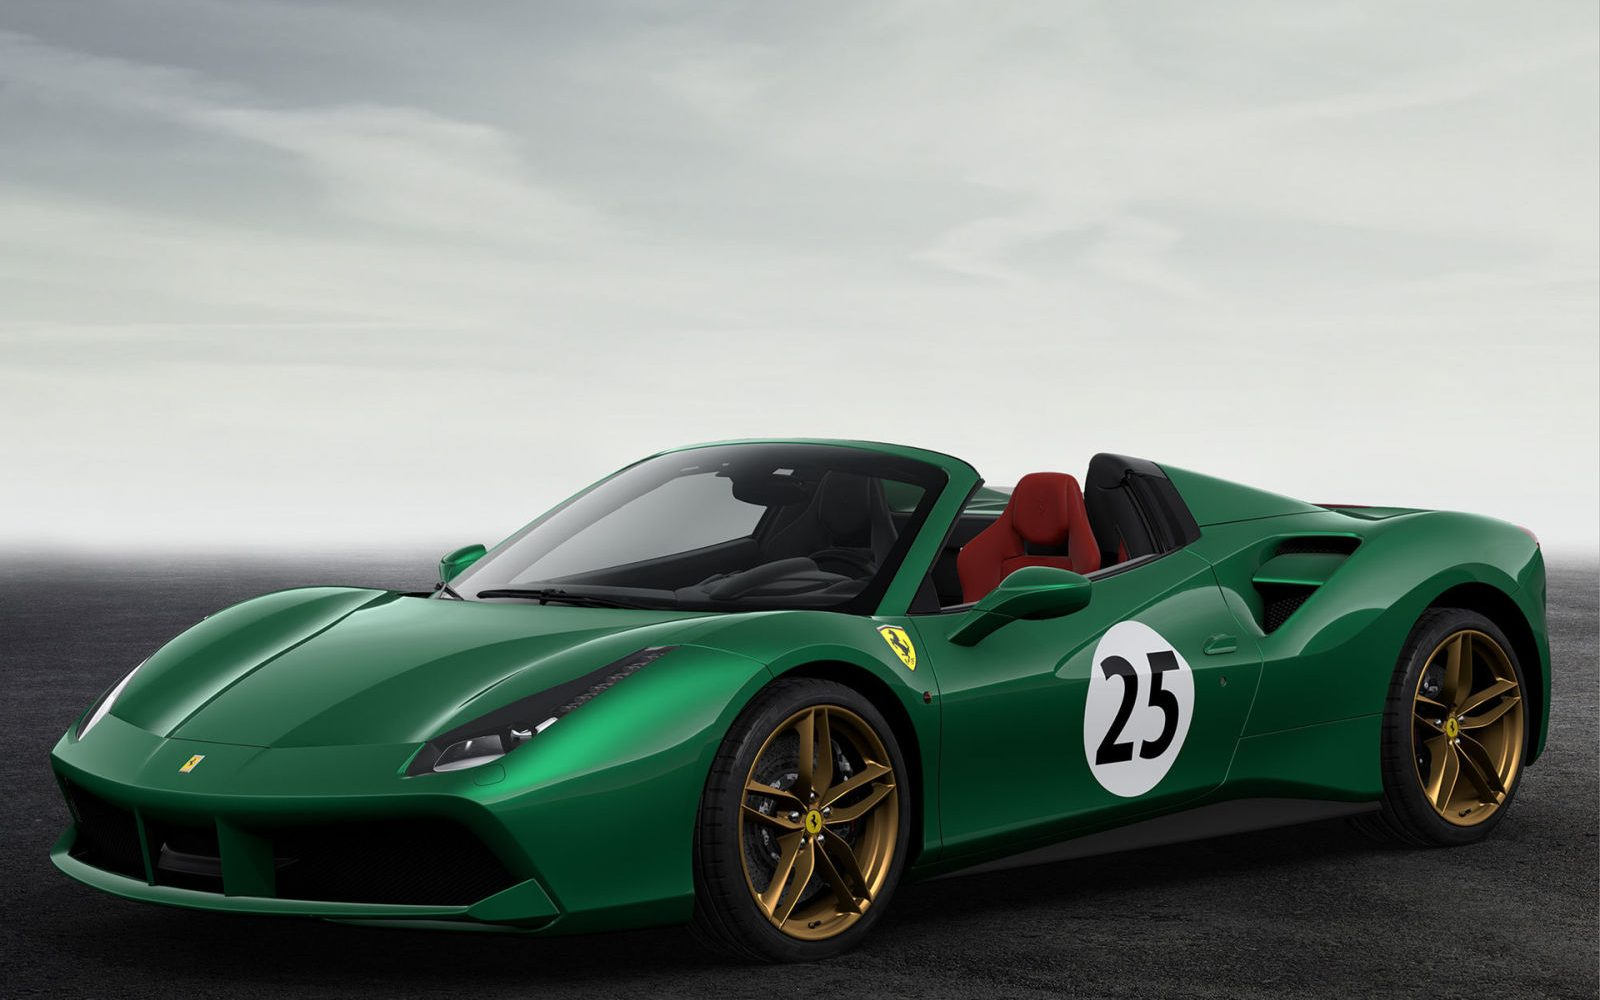 Ferrari Celebrates 70 Years With New Liveries – We Pick Out The Best